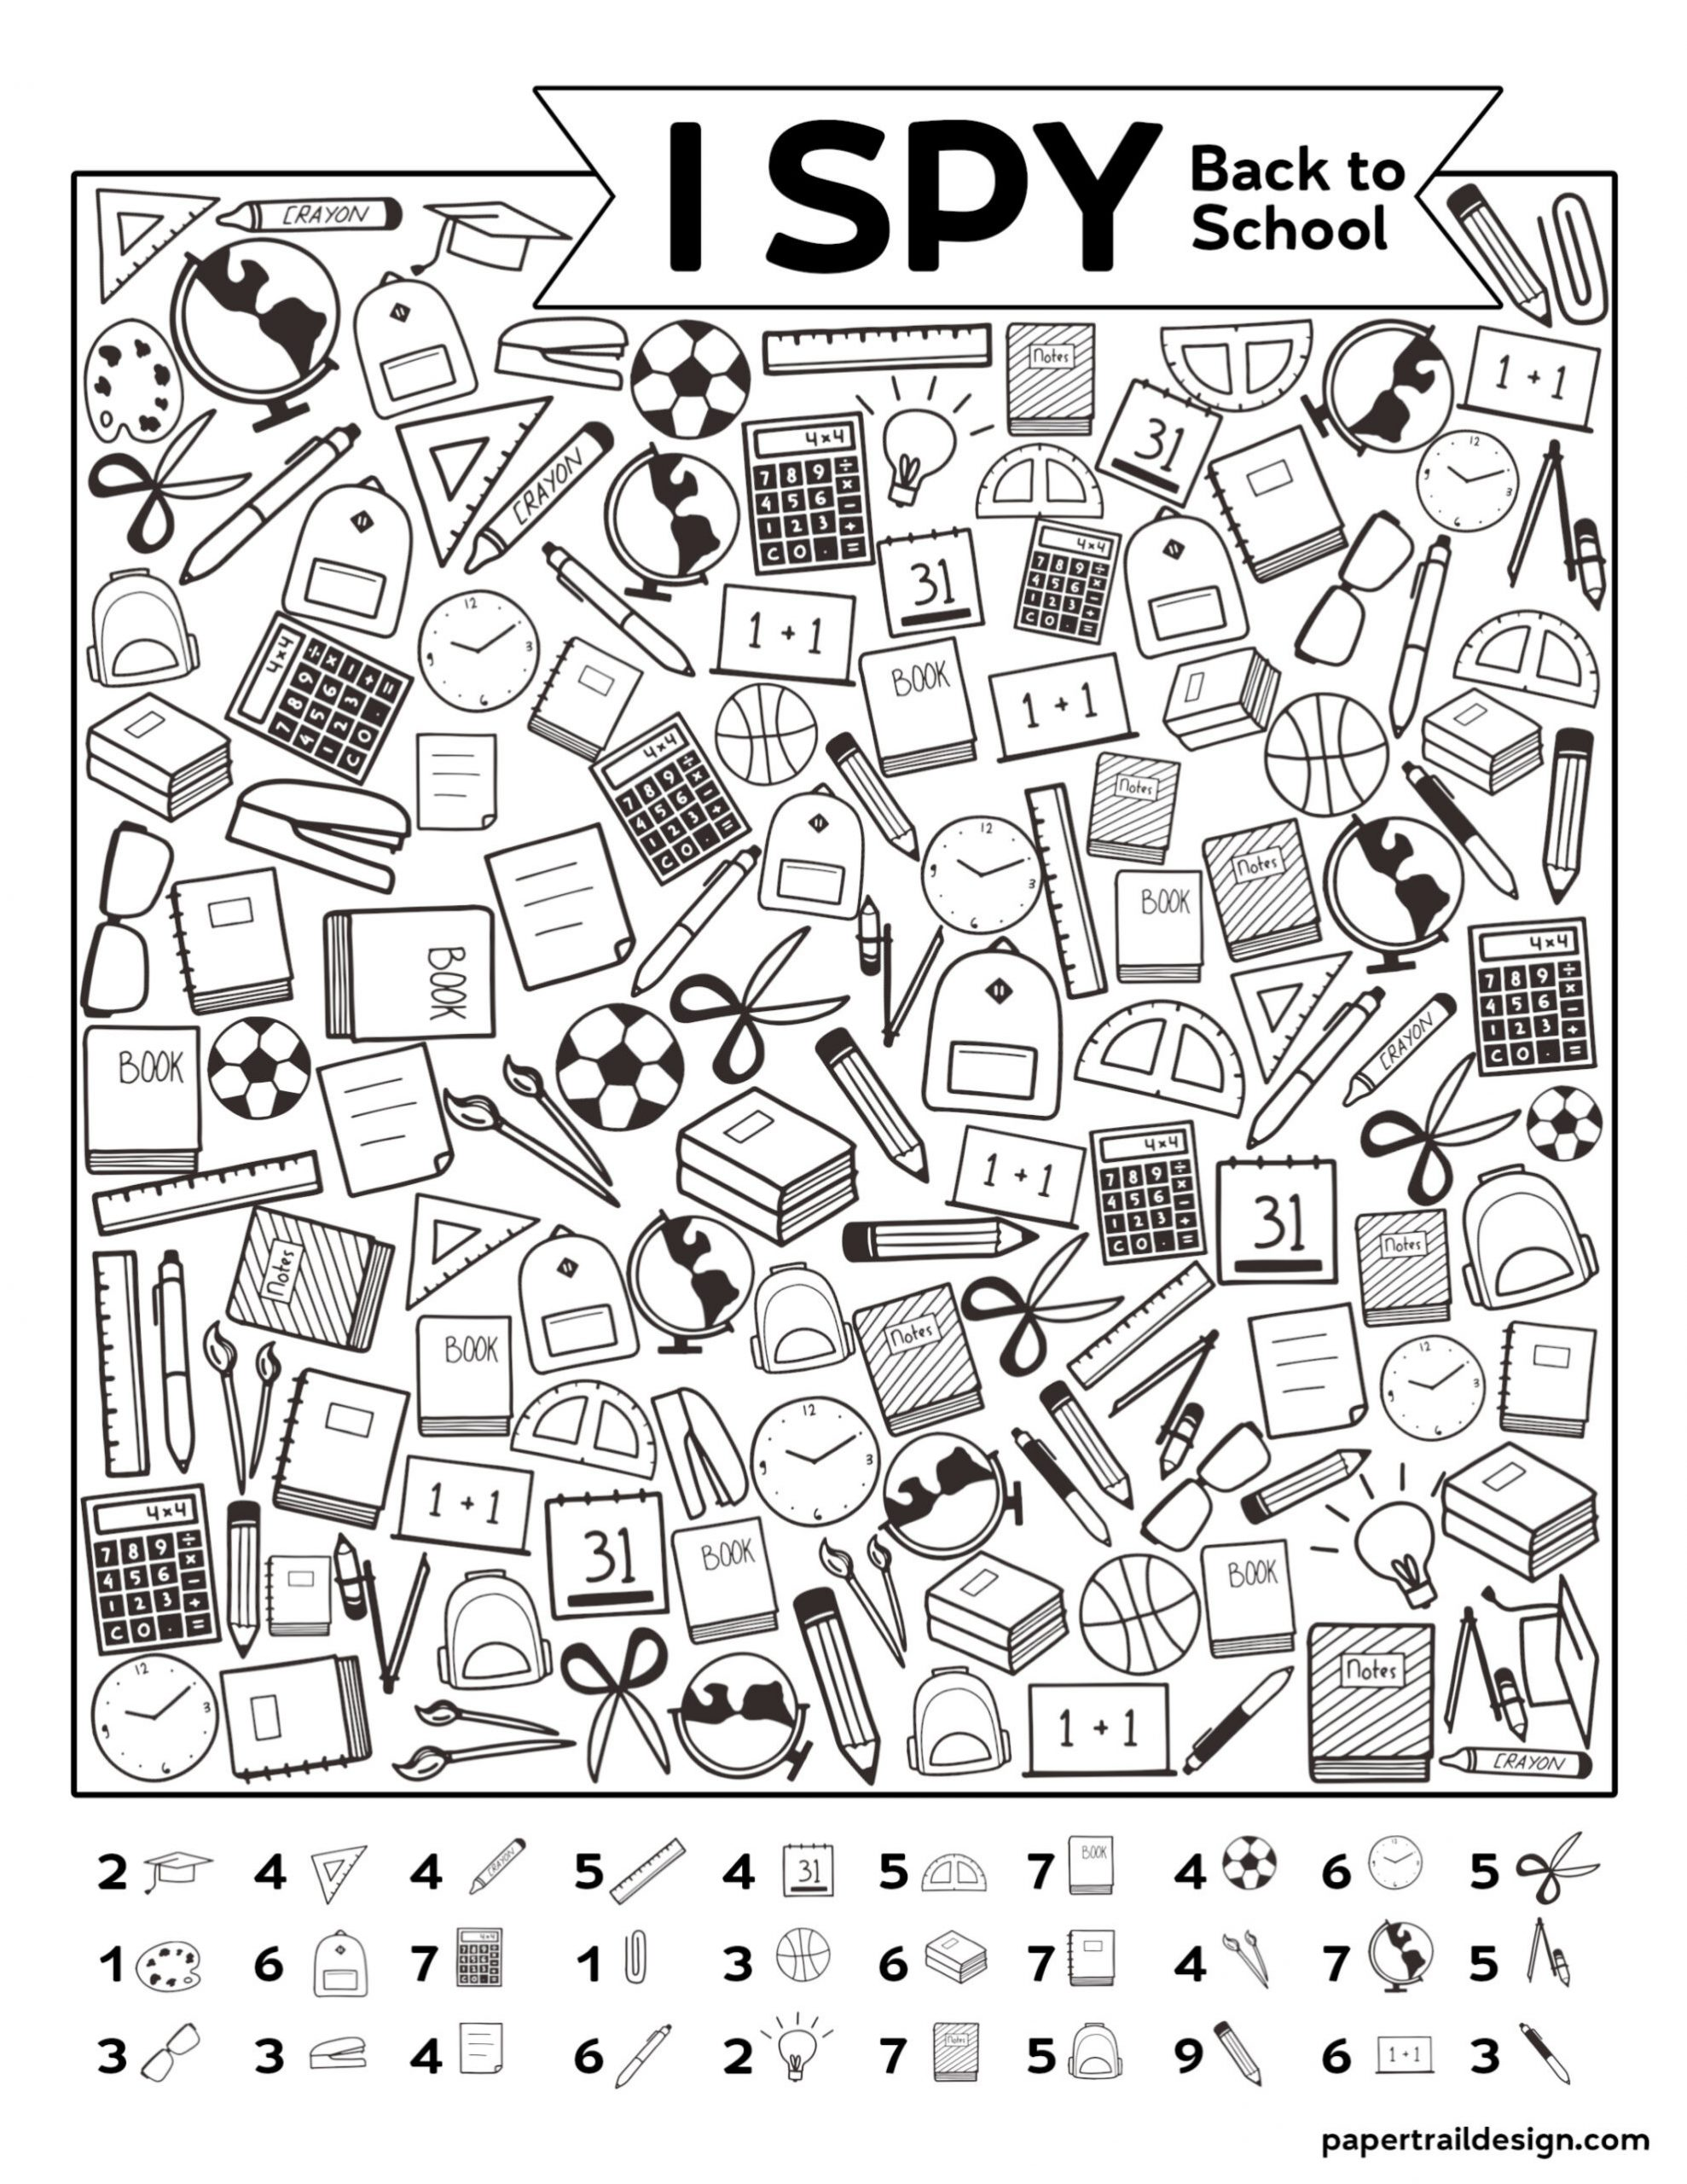 I Spy Printables Worksheets Free Printable I Spy Back to School Activity